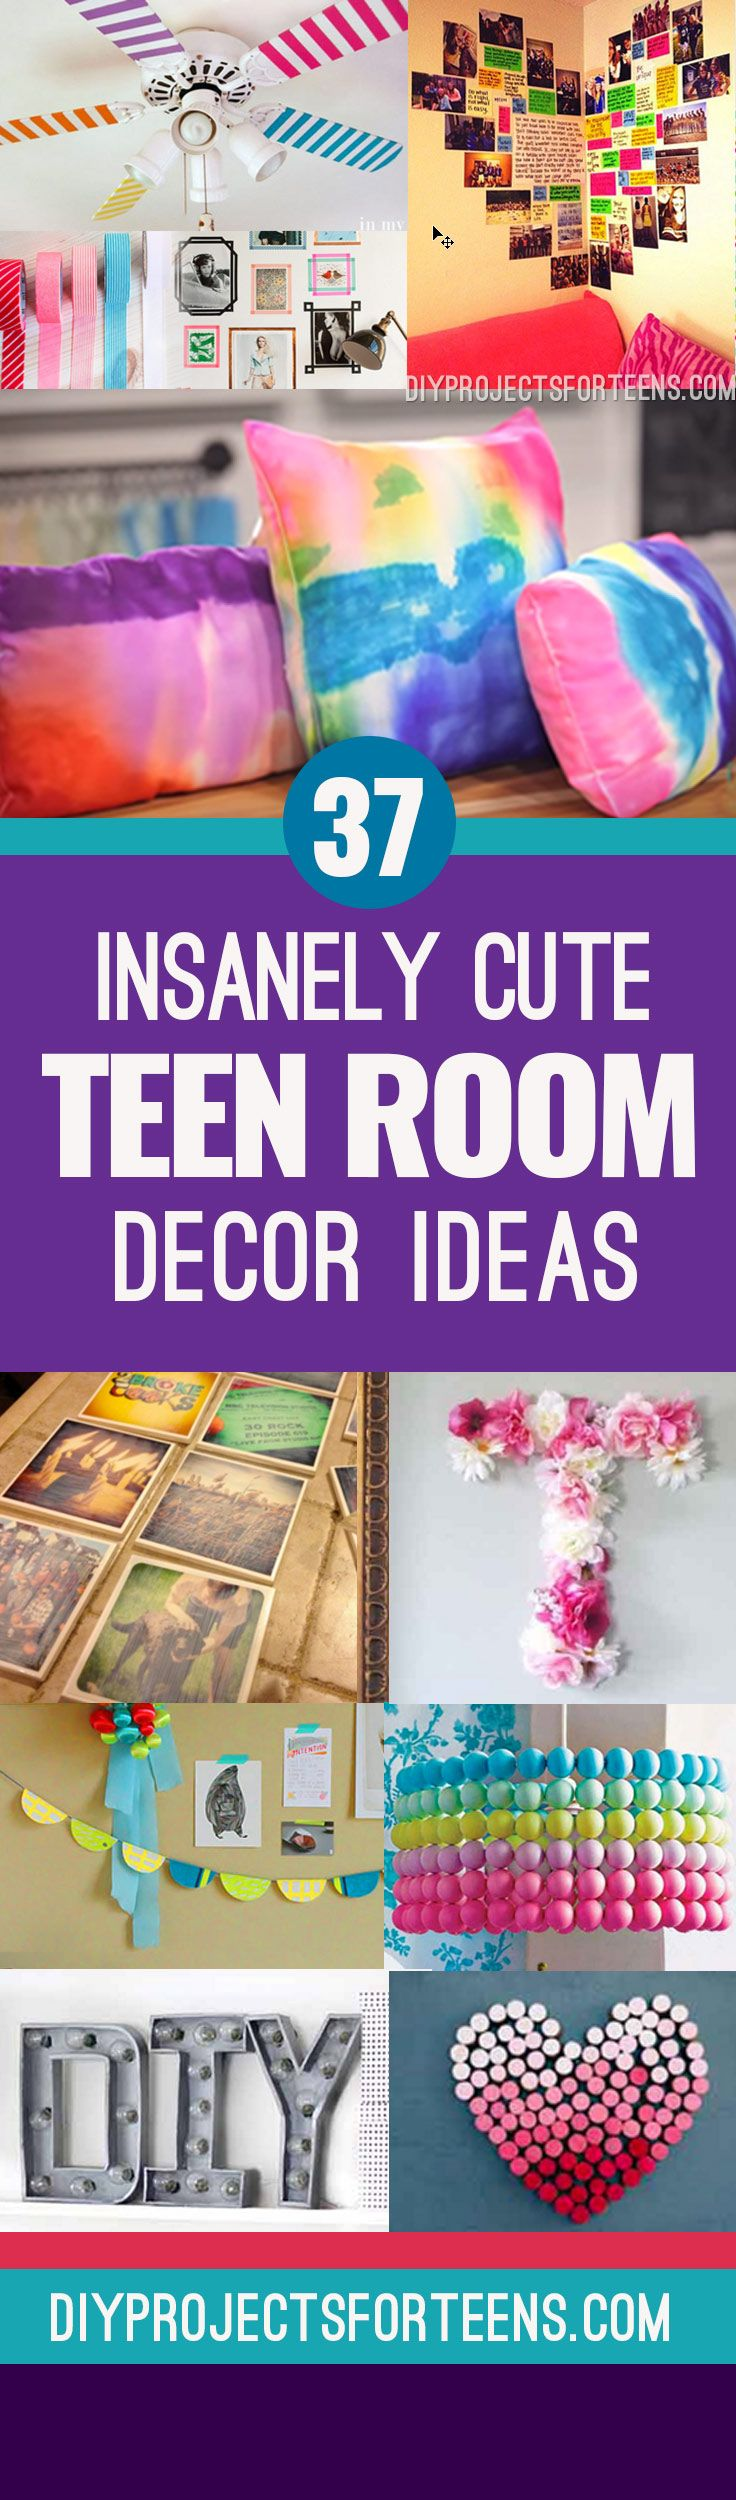 Cute DIY Room Decor Ideas For Teens   Best DIY Room Decor Ideas From  Pinterest,